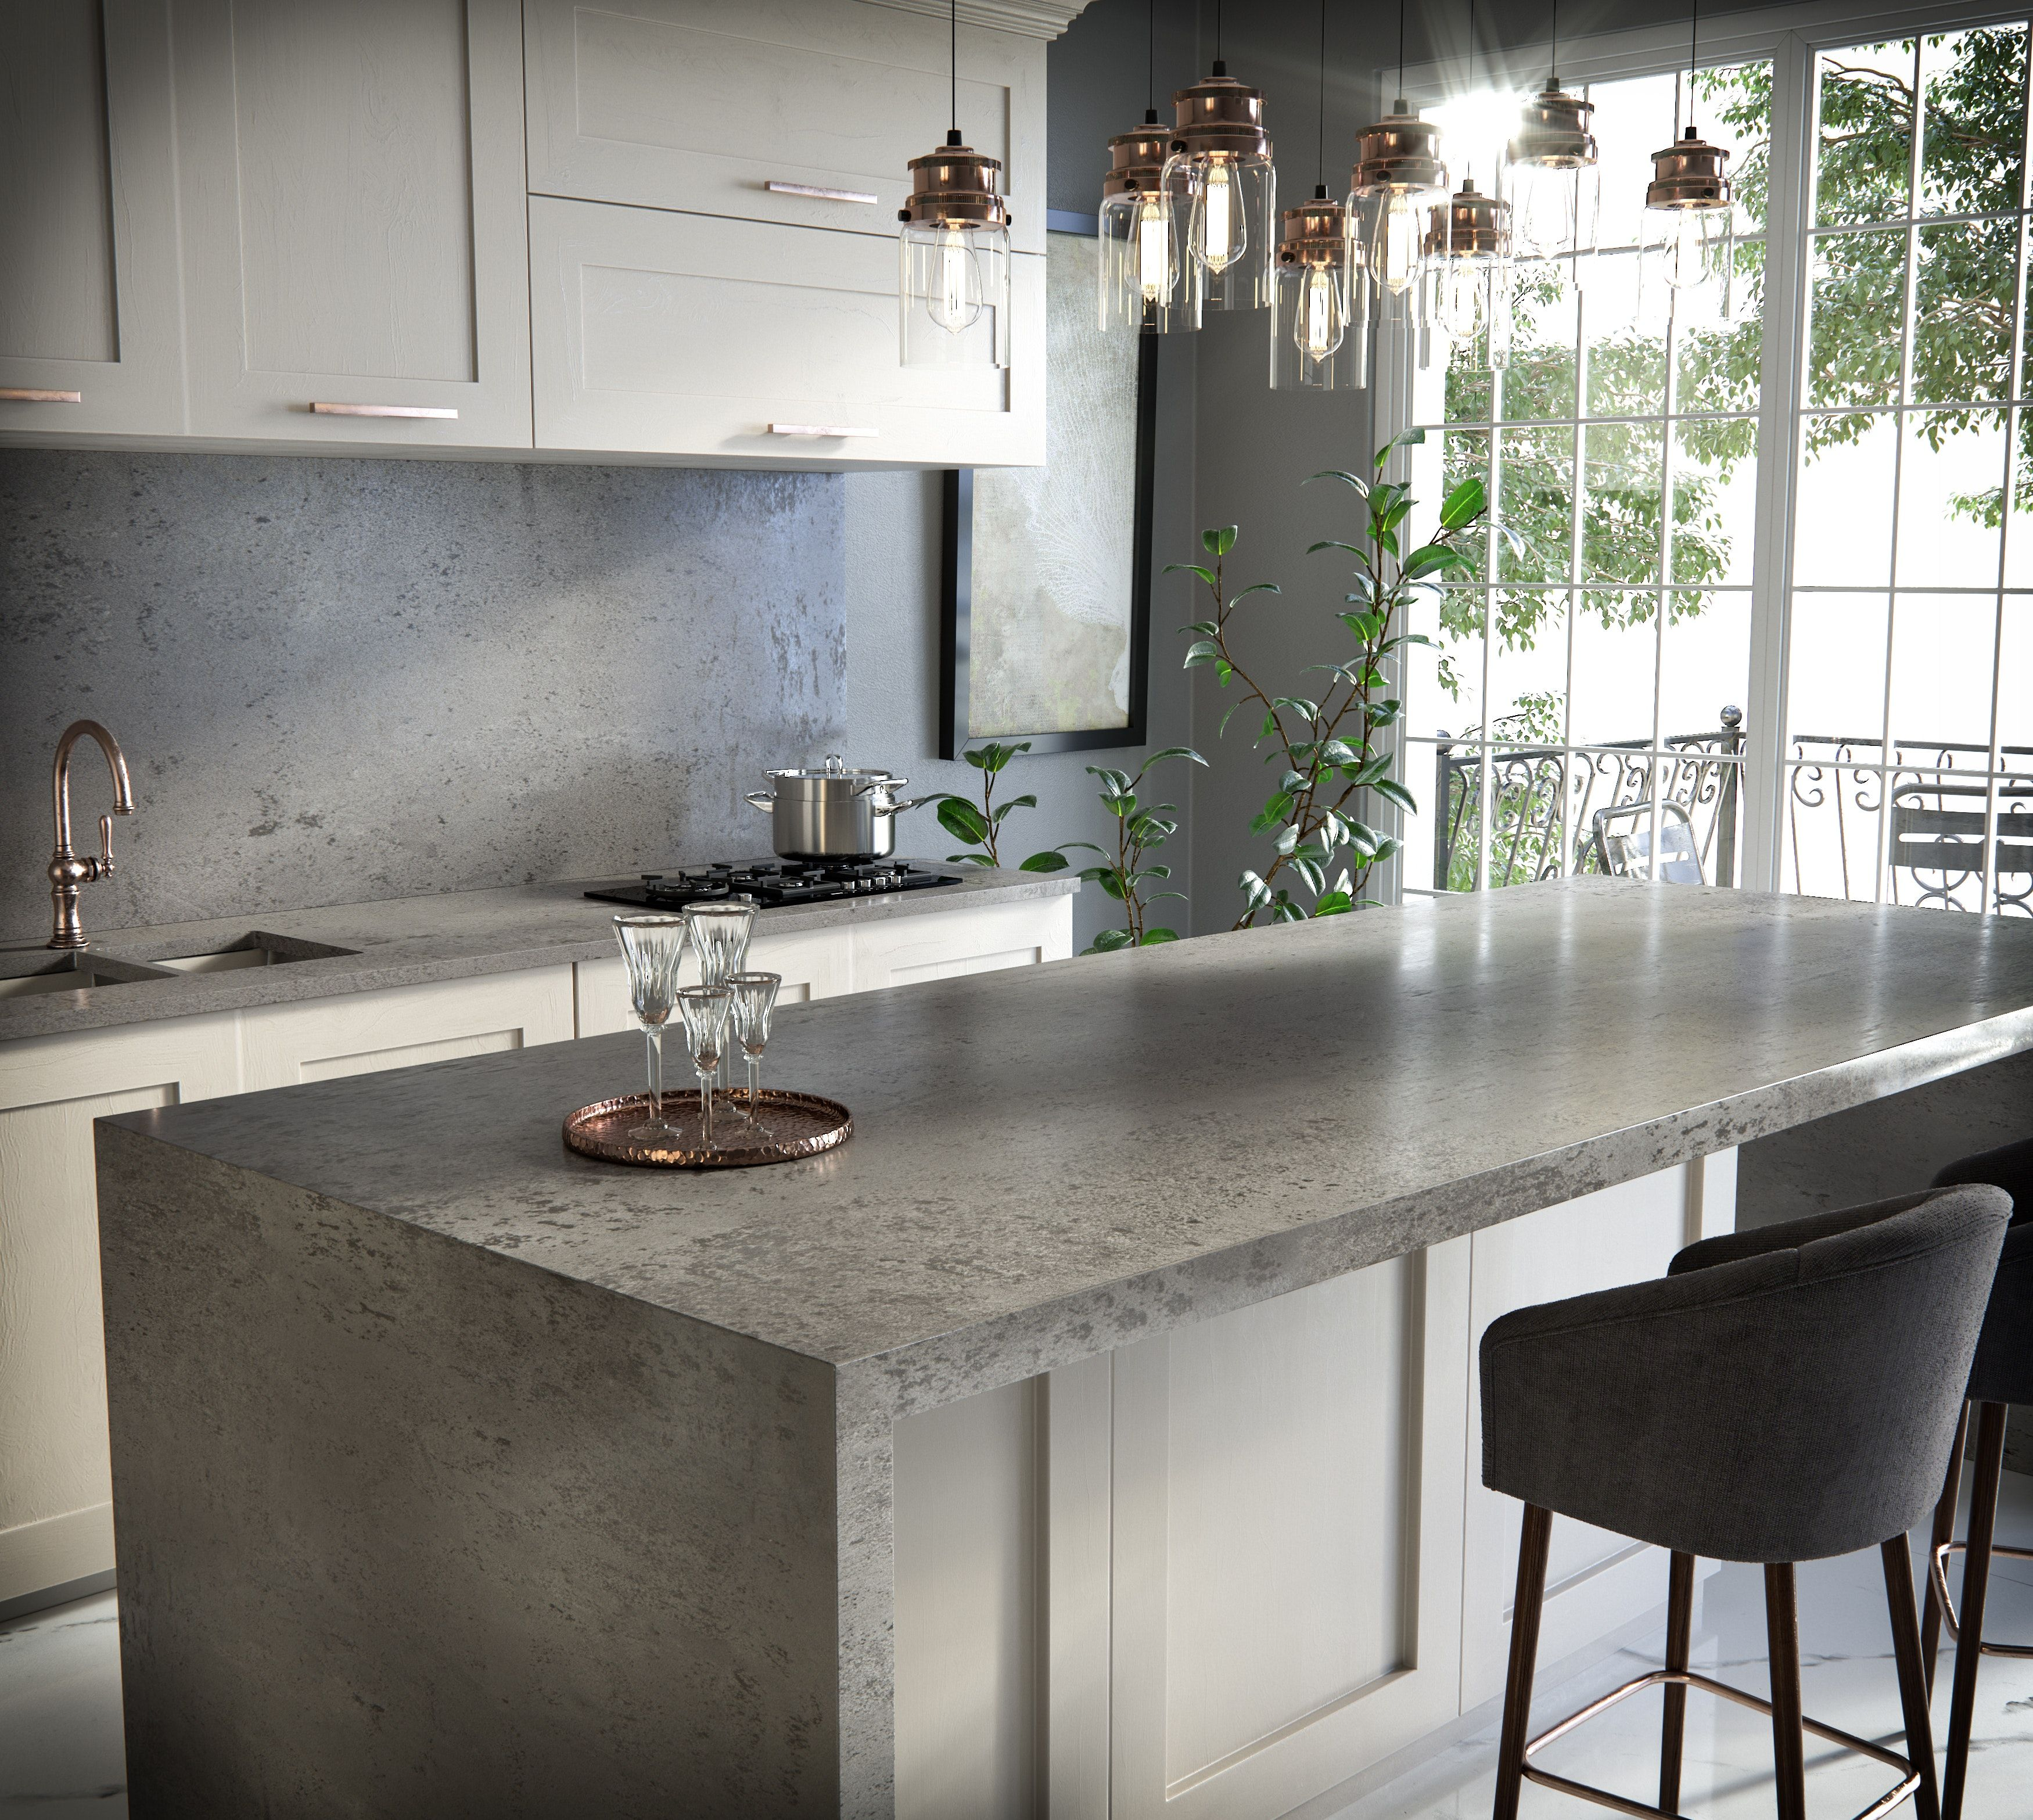 Cosentino Launches New Silestone Loft Series At The 2019 Toronto Interior Design Show Toronto Interior Design Interior Design Shows Brooklyn Kitchen